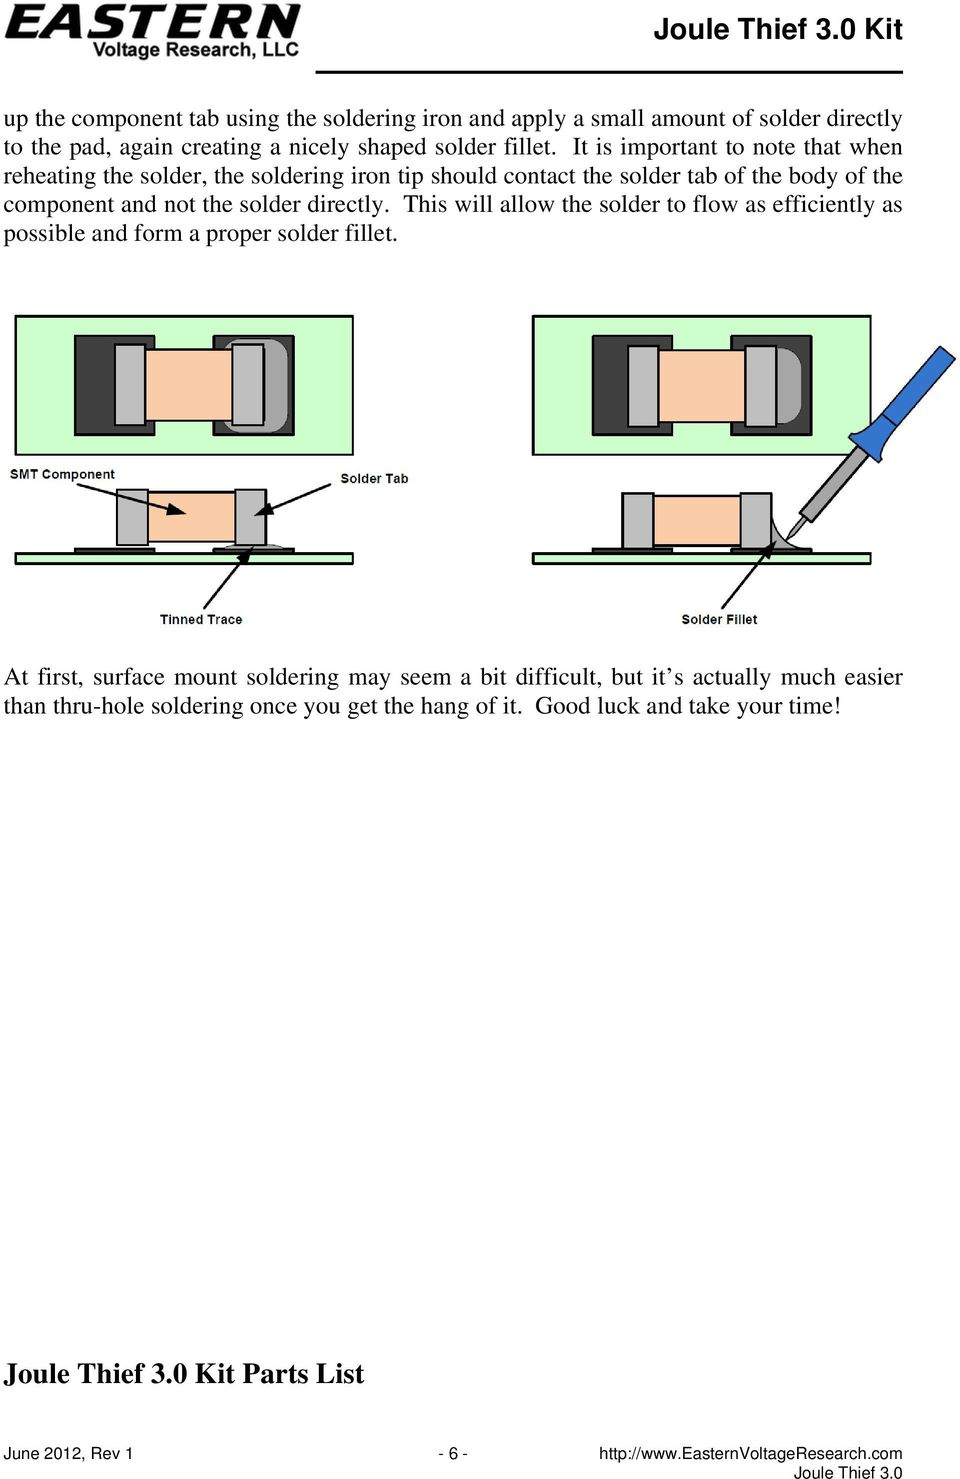 directly. This will allow the solder to flow as efficiently as possible and form a proper solder fillet.